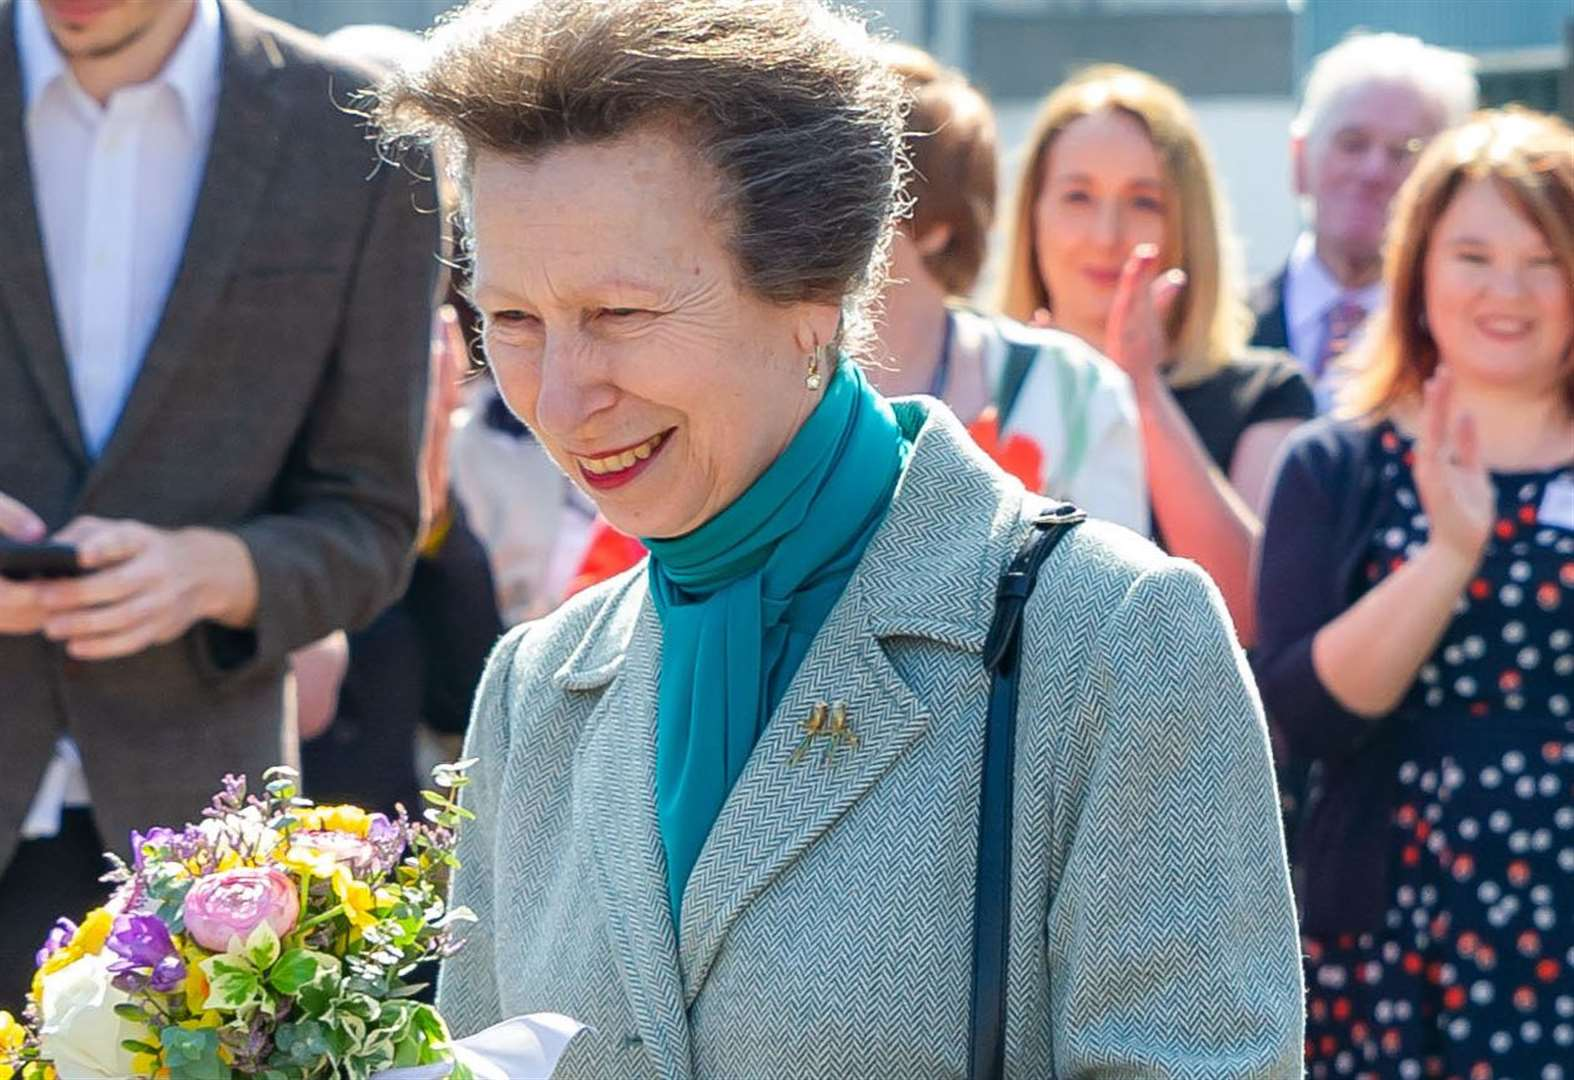 Princess to visit two of the county's hospitals